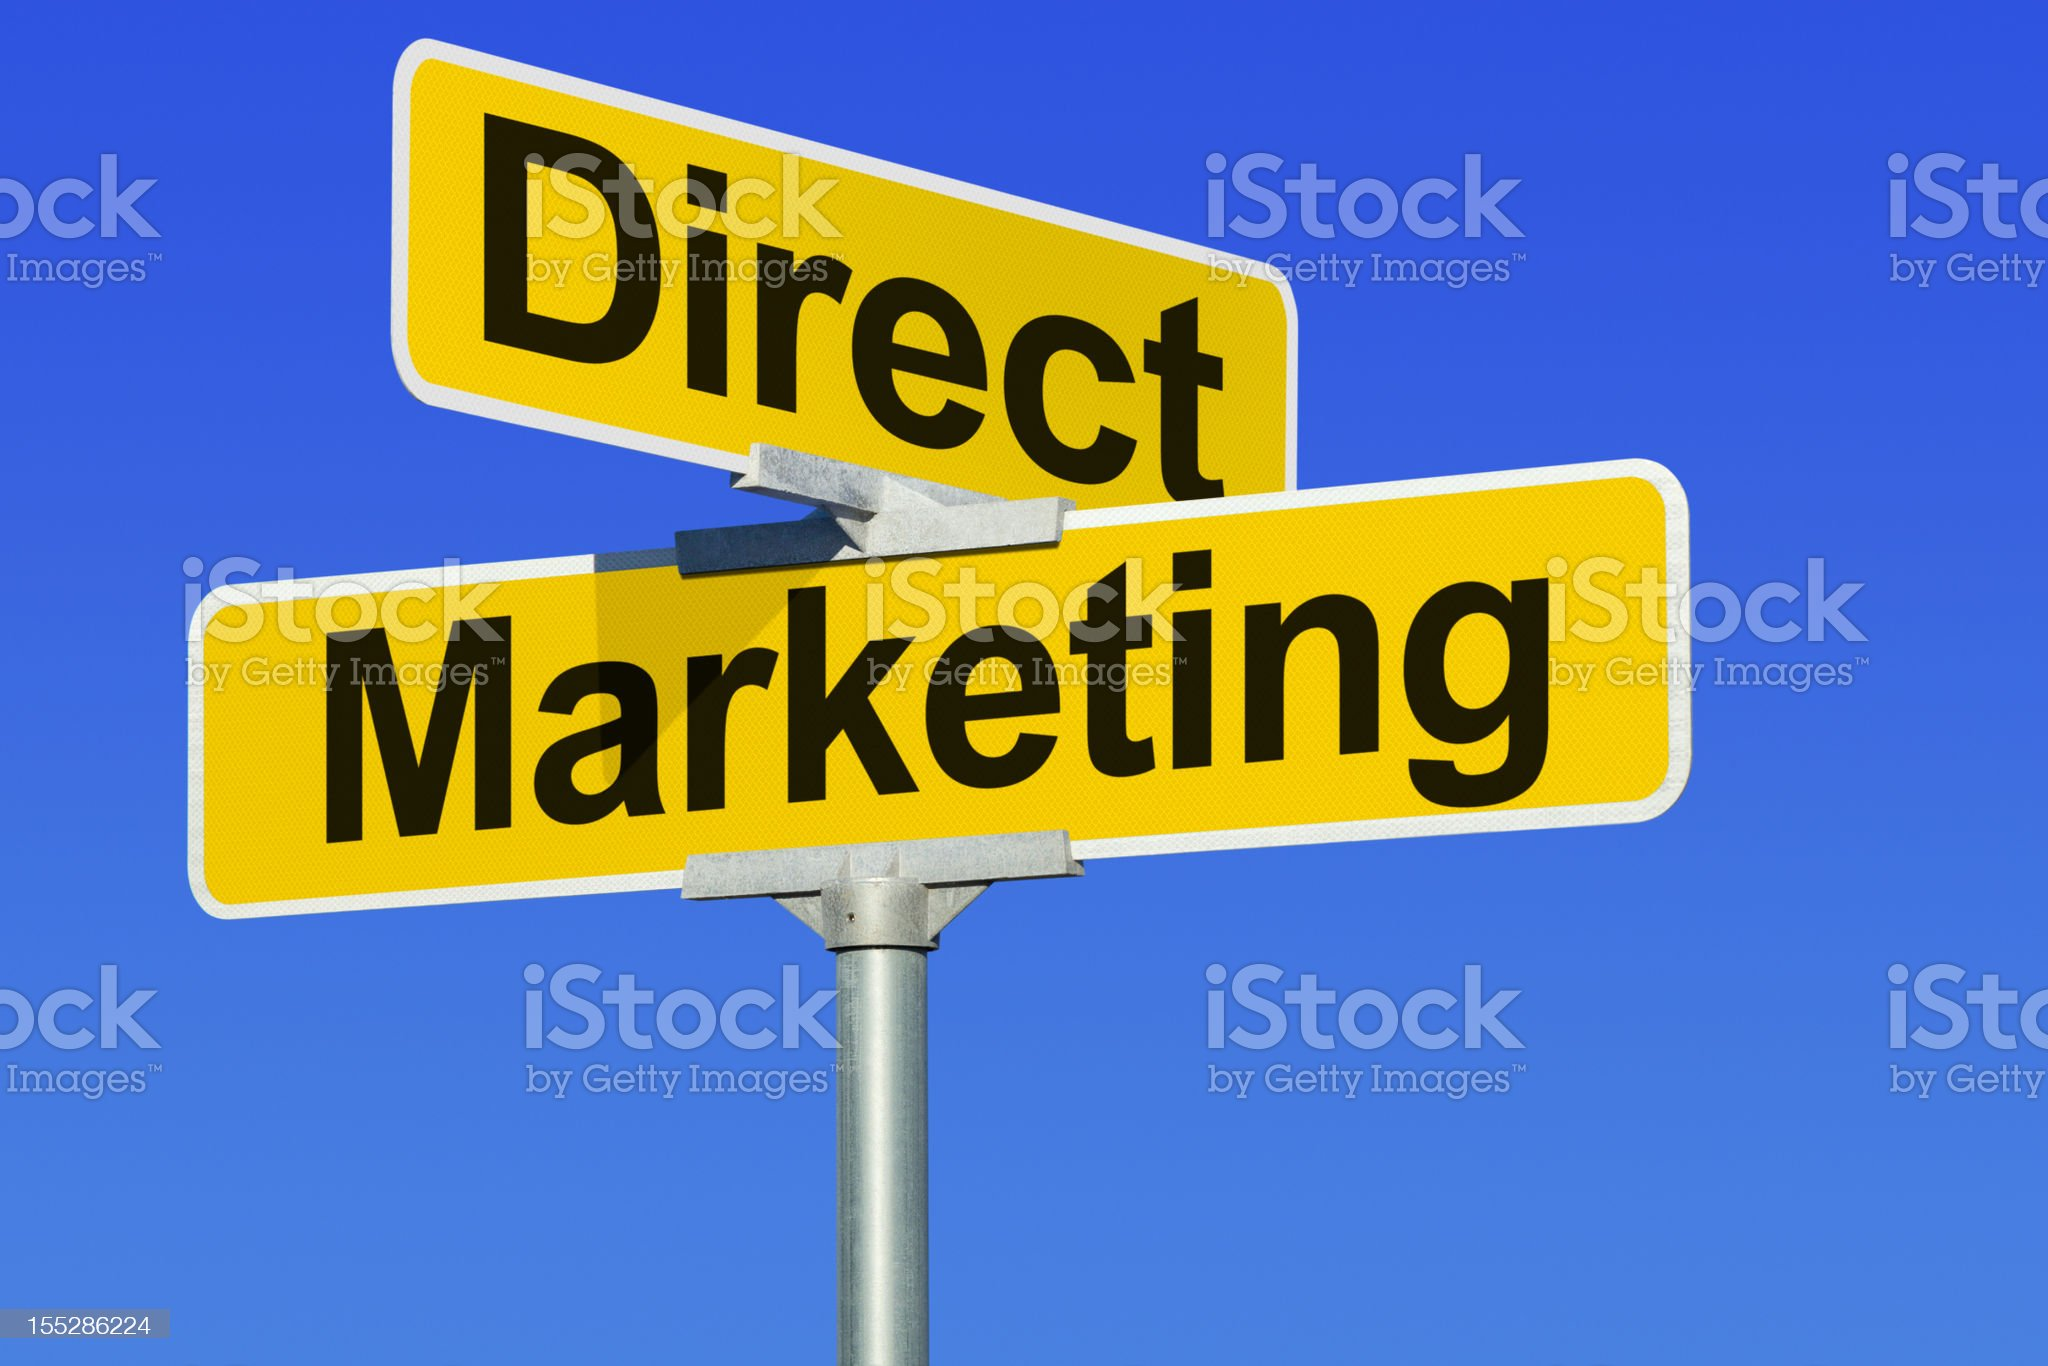 Direct Marketing Street Intersection Sign royalty-free stock photo